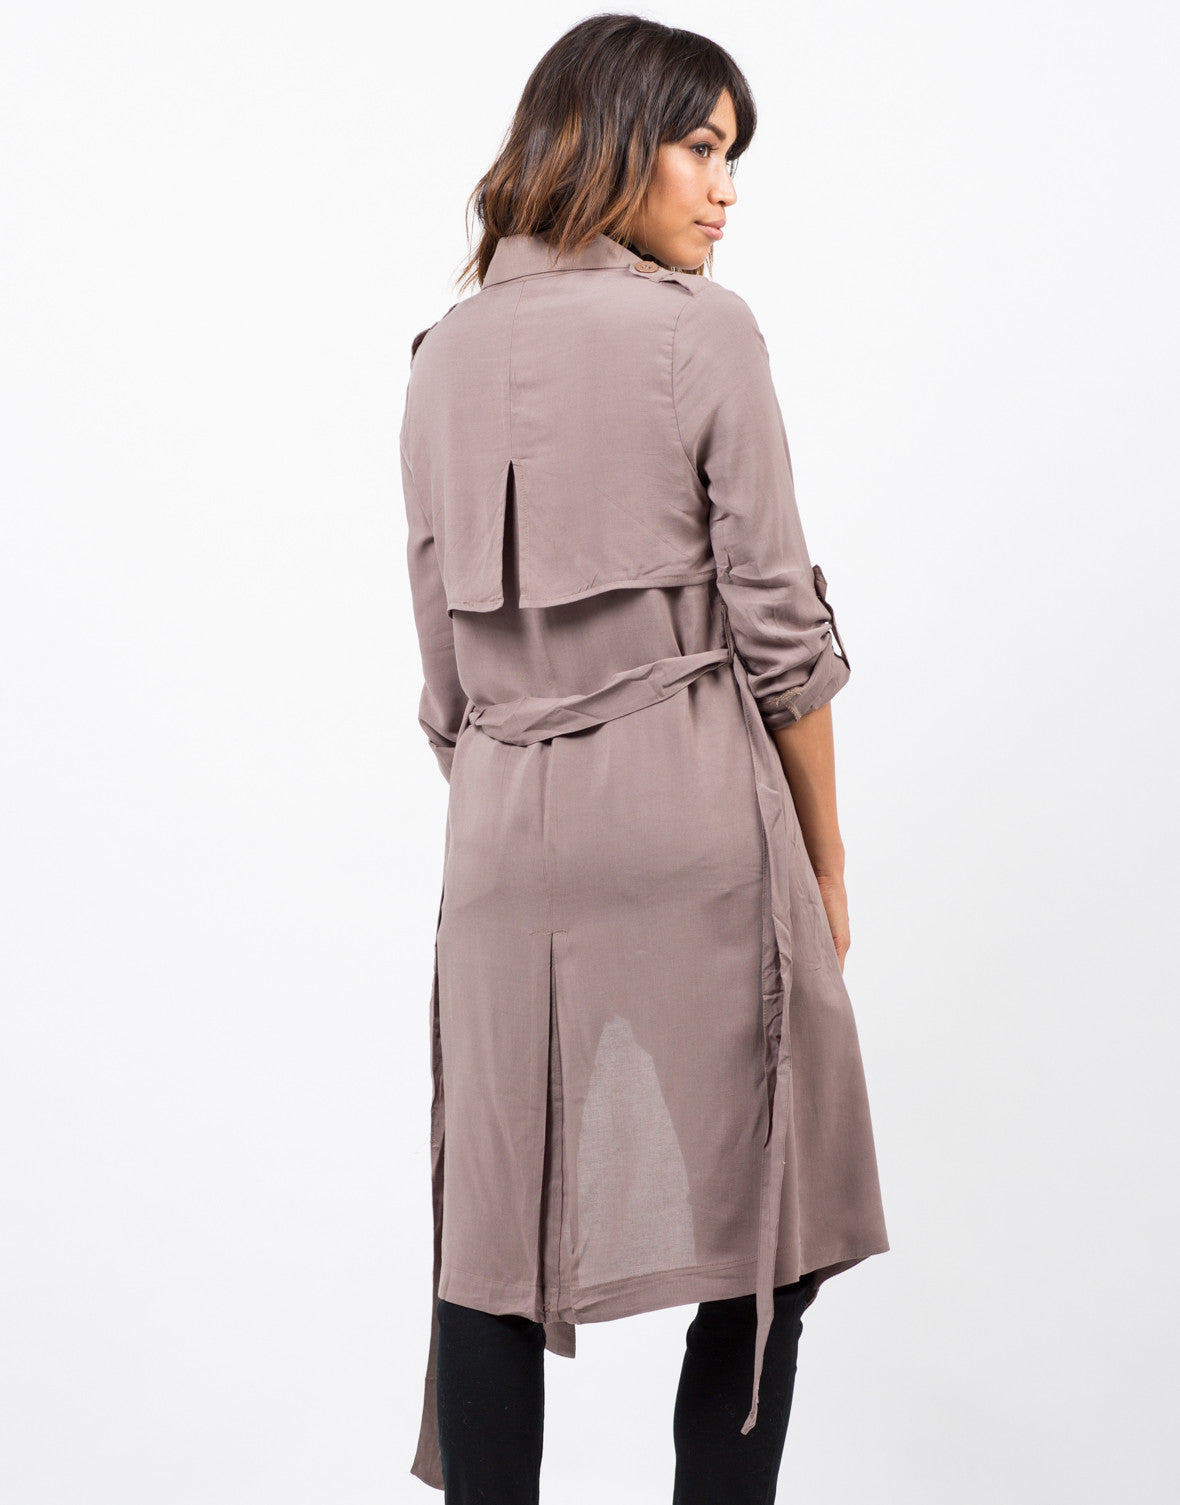 Back View of Belted Crepe Trench Jacket